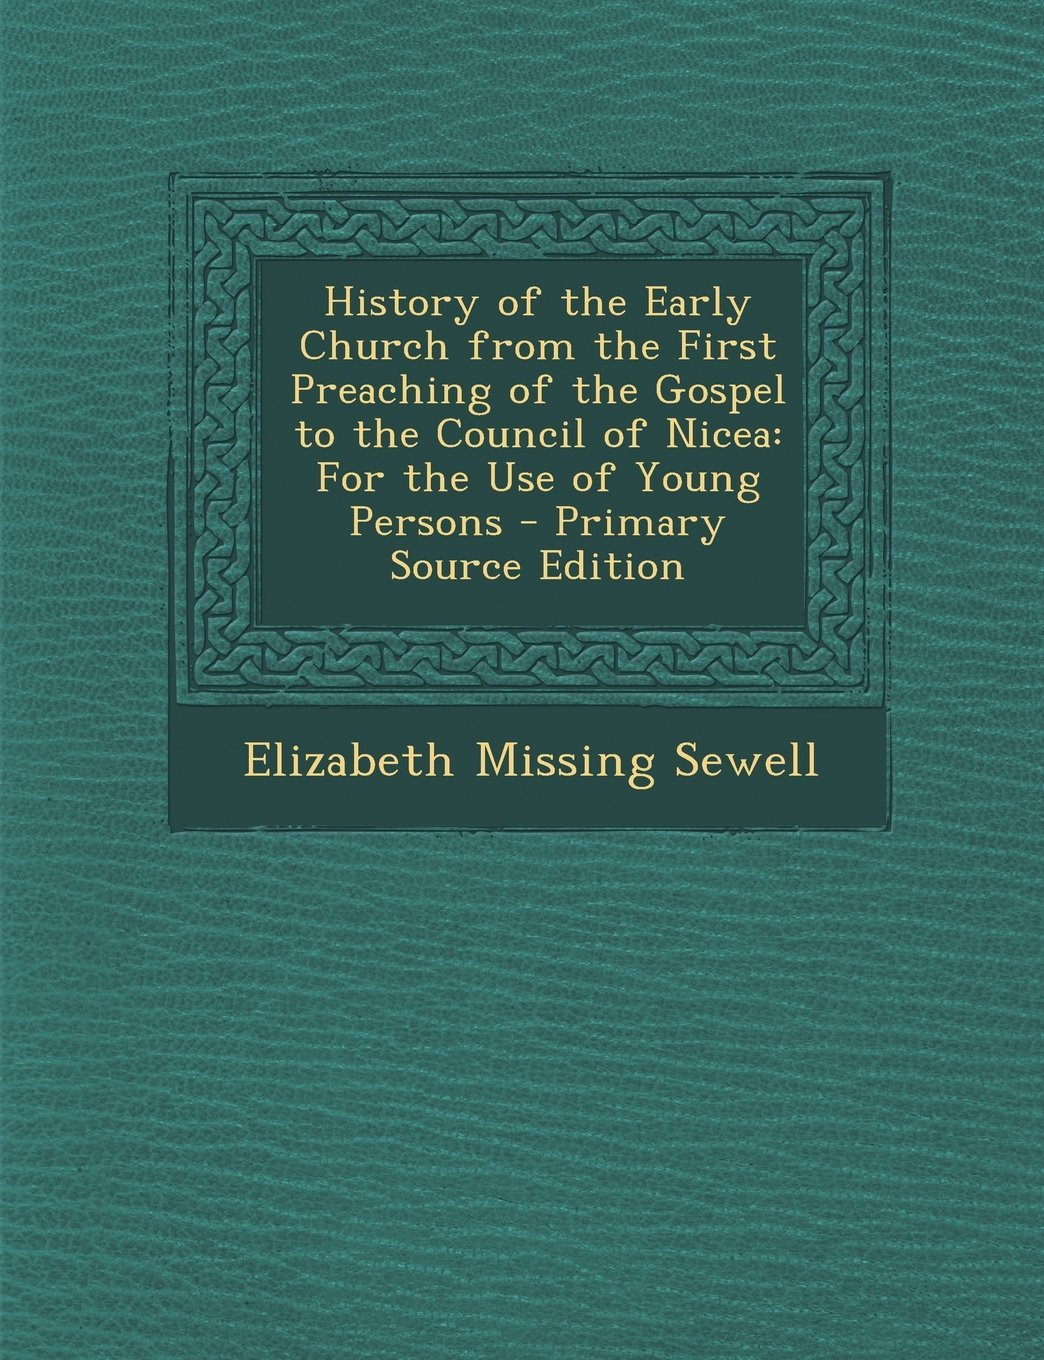 Download History of the Early Church from the First Preaching of the Gospel to the Council of Nicea: For the Use of Young Persons pdf